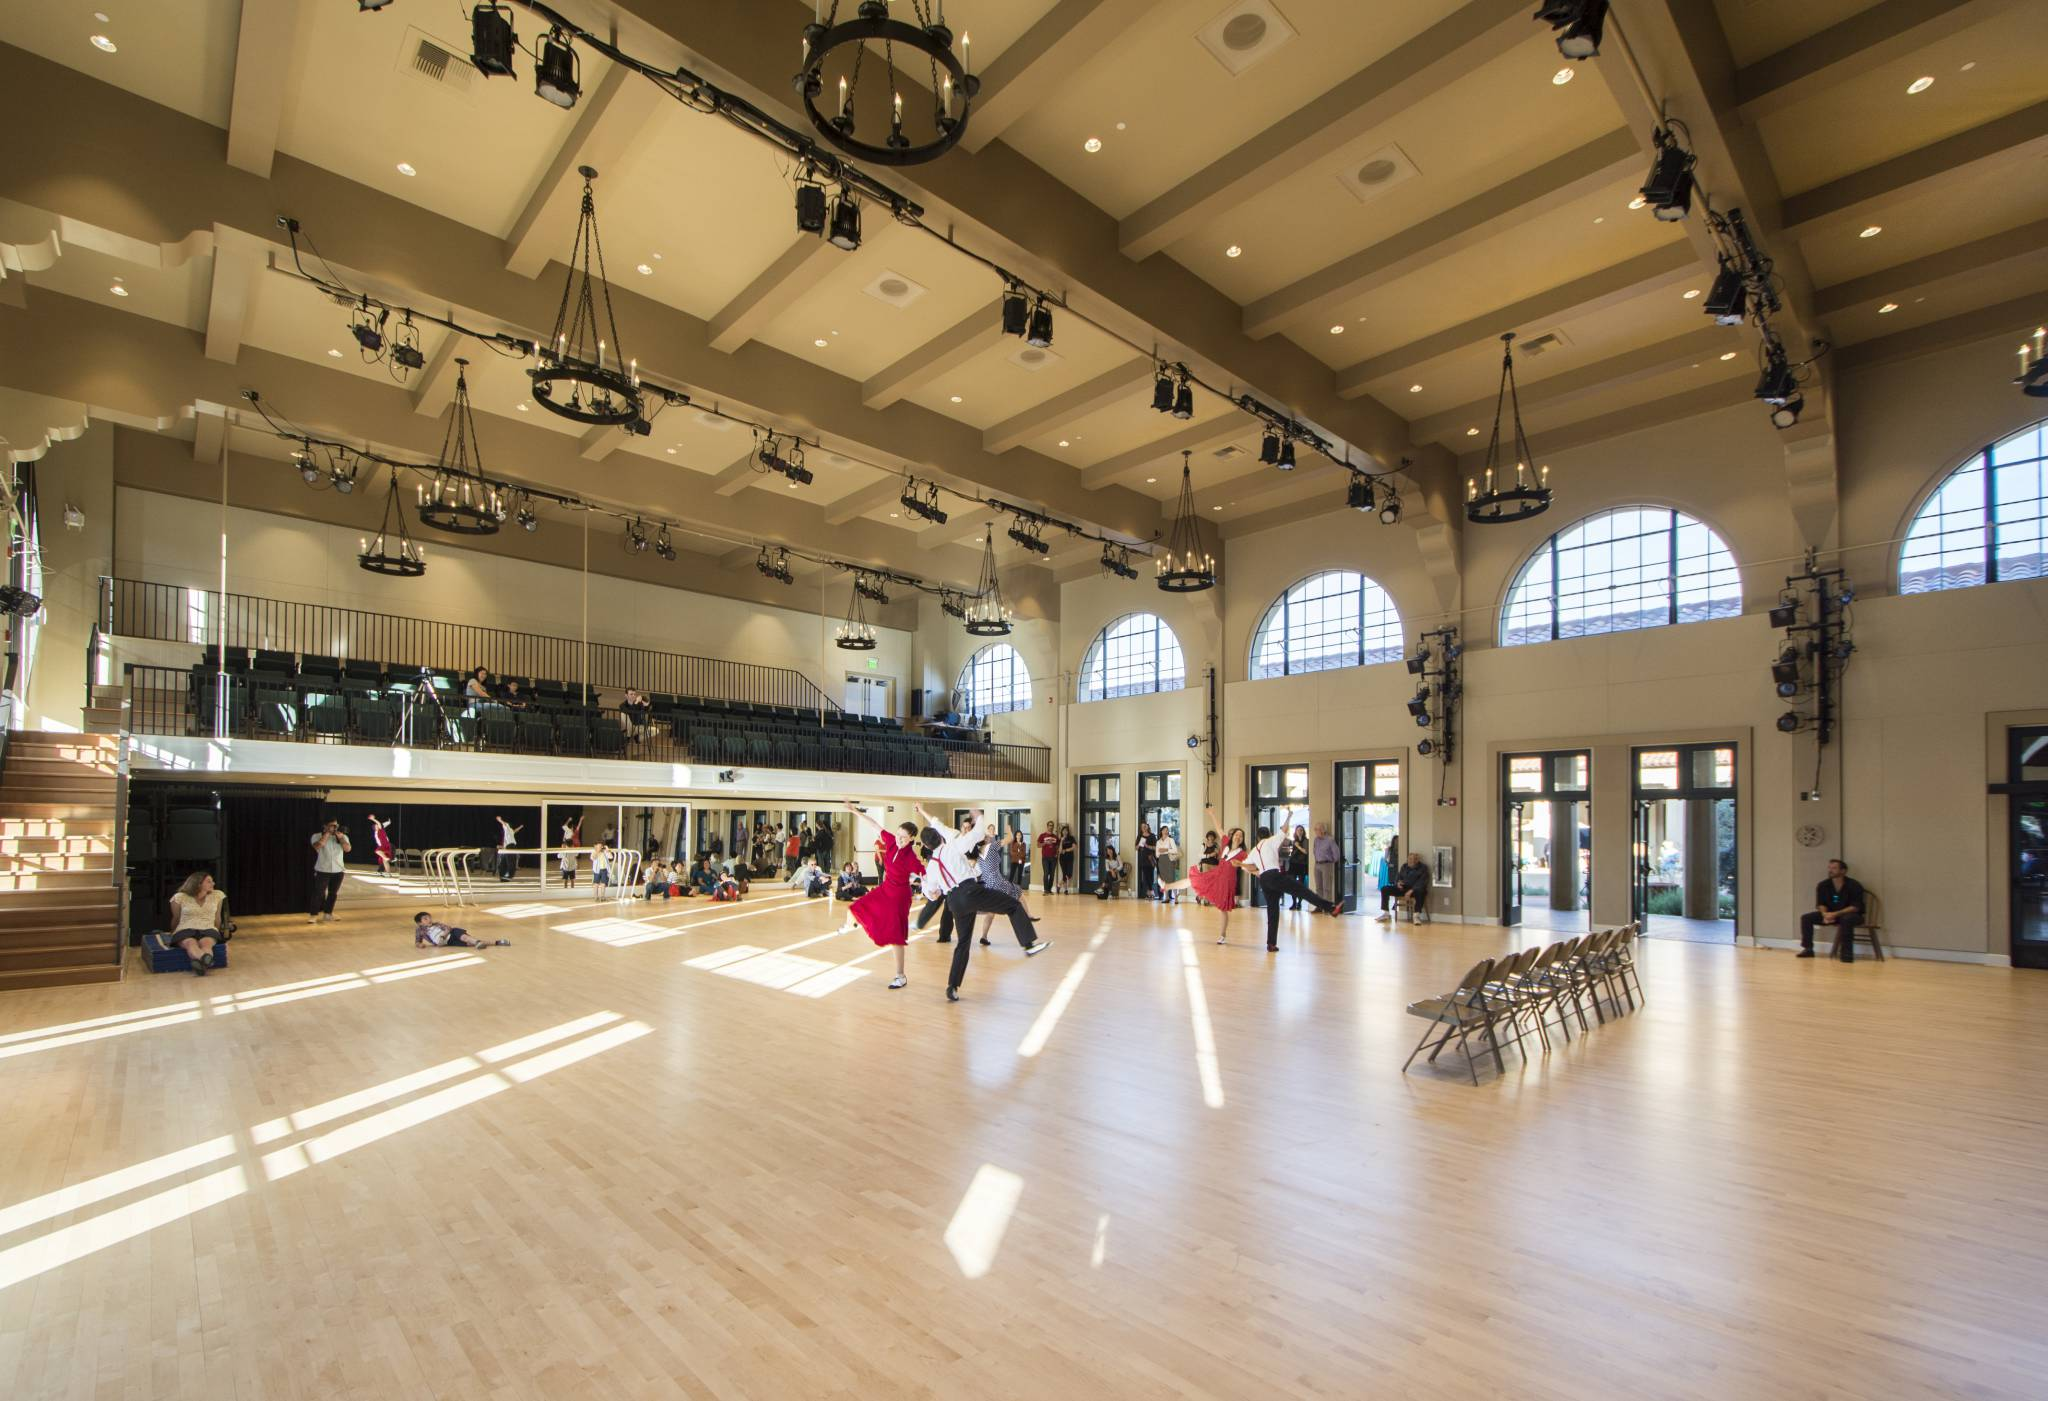 Roble Gymnasium Interior